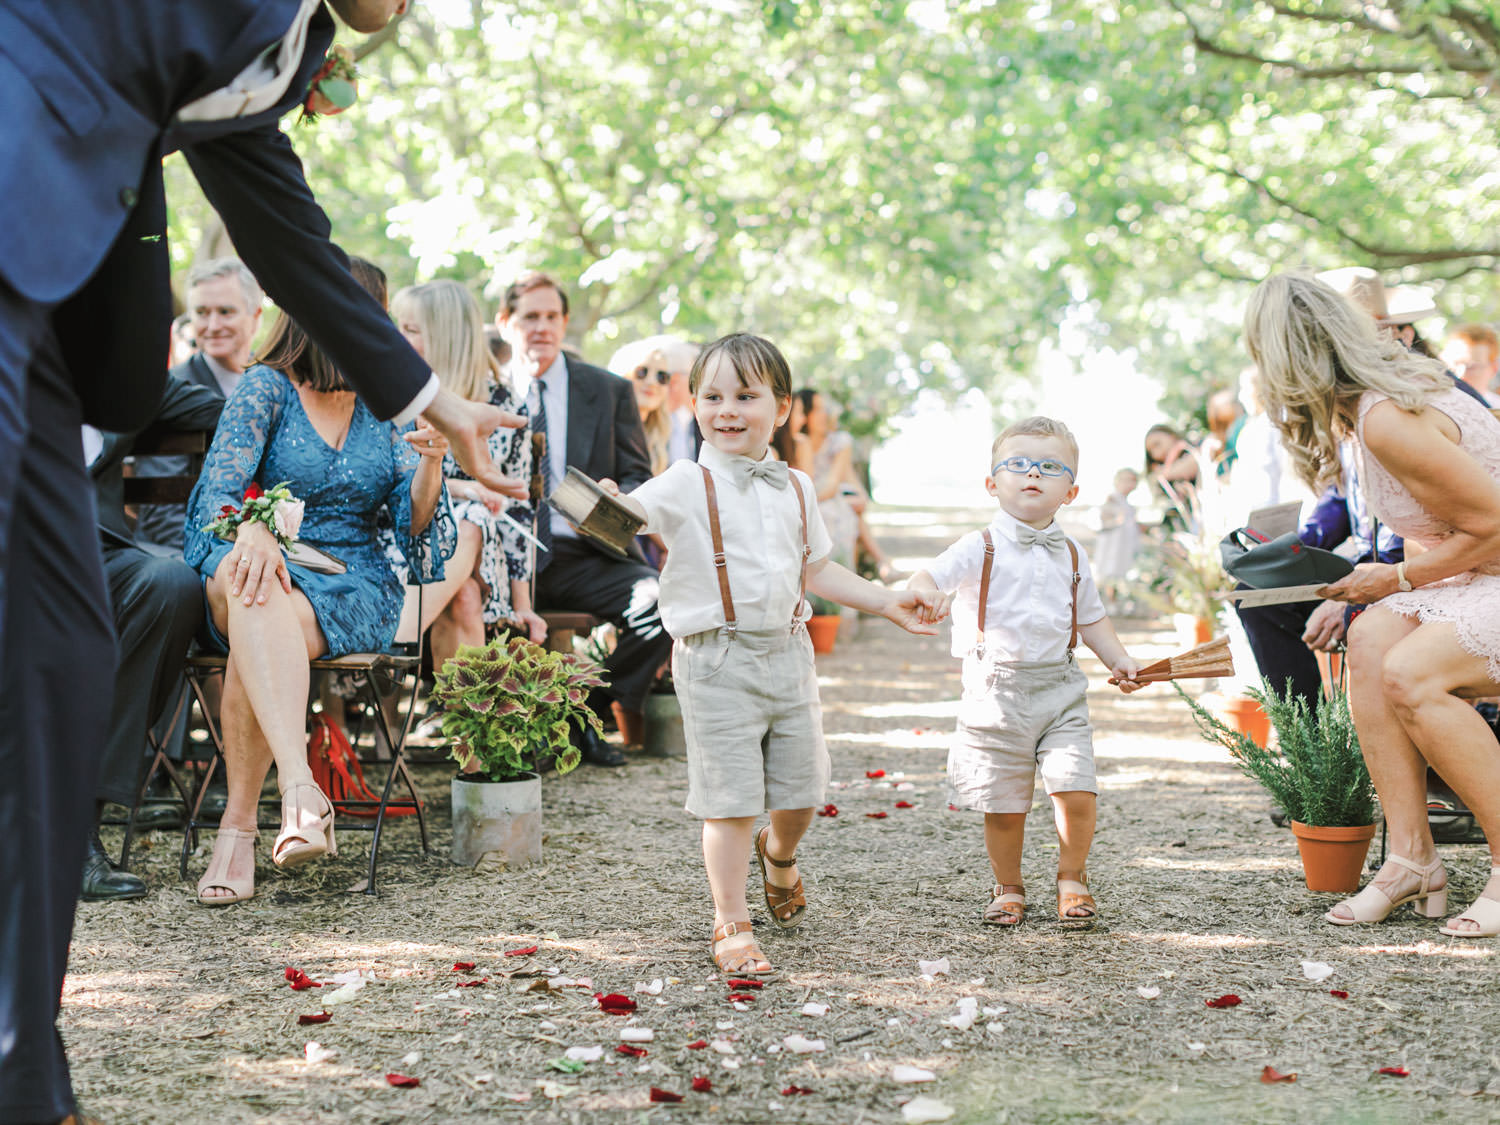 Ring bearers in suspenders and shorts with bow ties walking down the aisle. Full Belly Farm ceremony on Martha Stewart Weddings by film photographer Cavin Elizabeth Photography